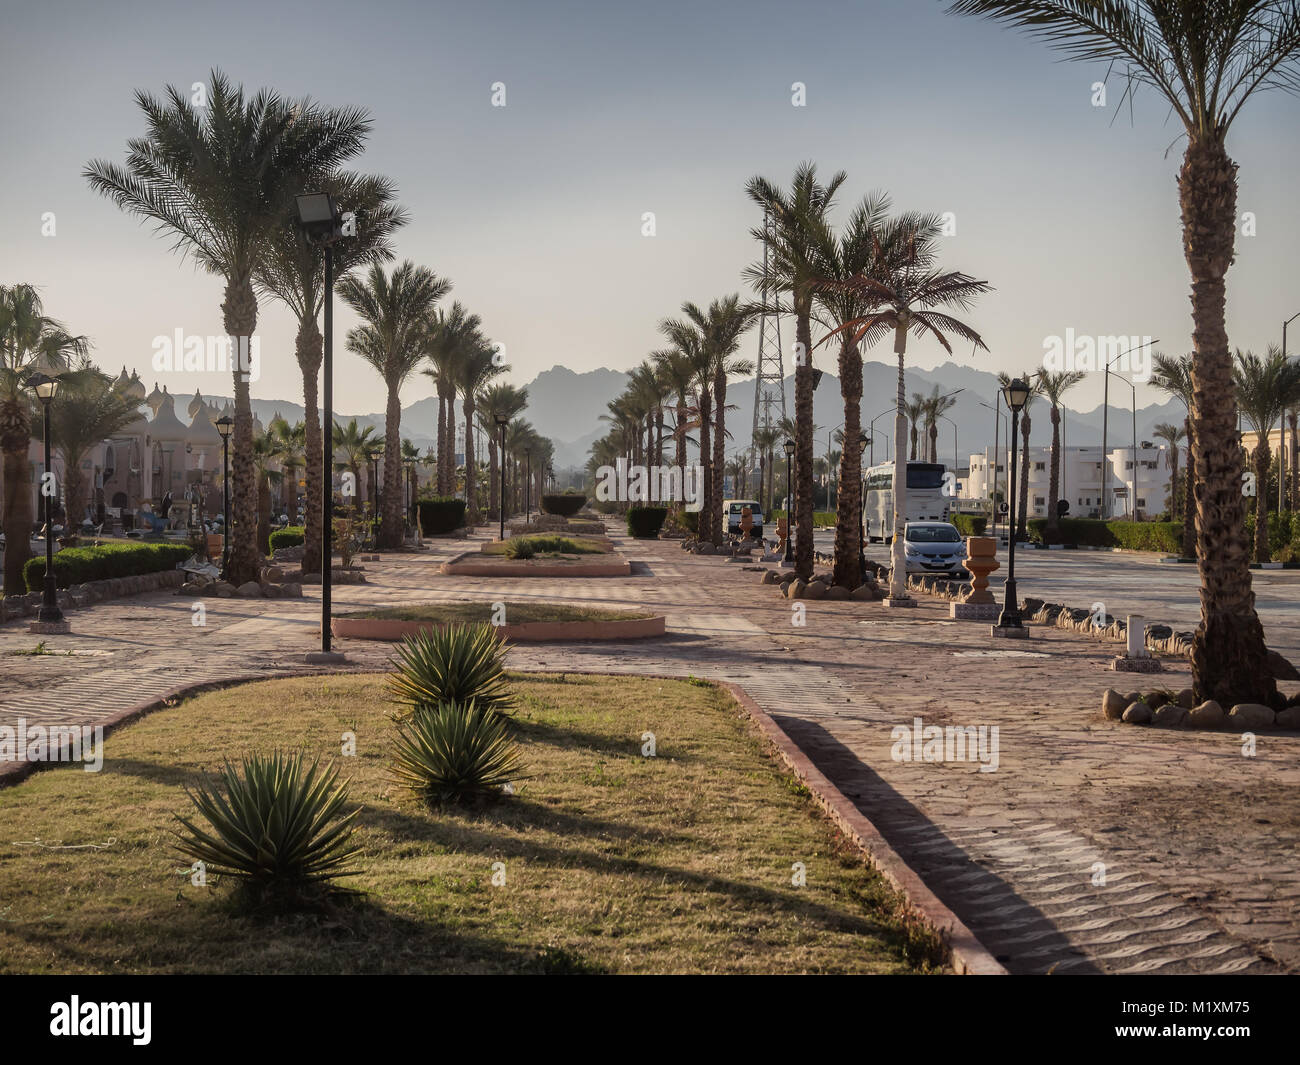 Naama bay old market